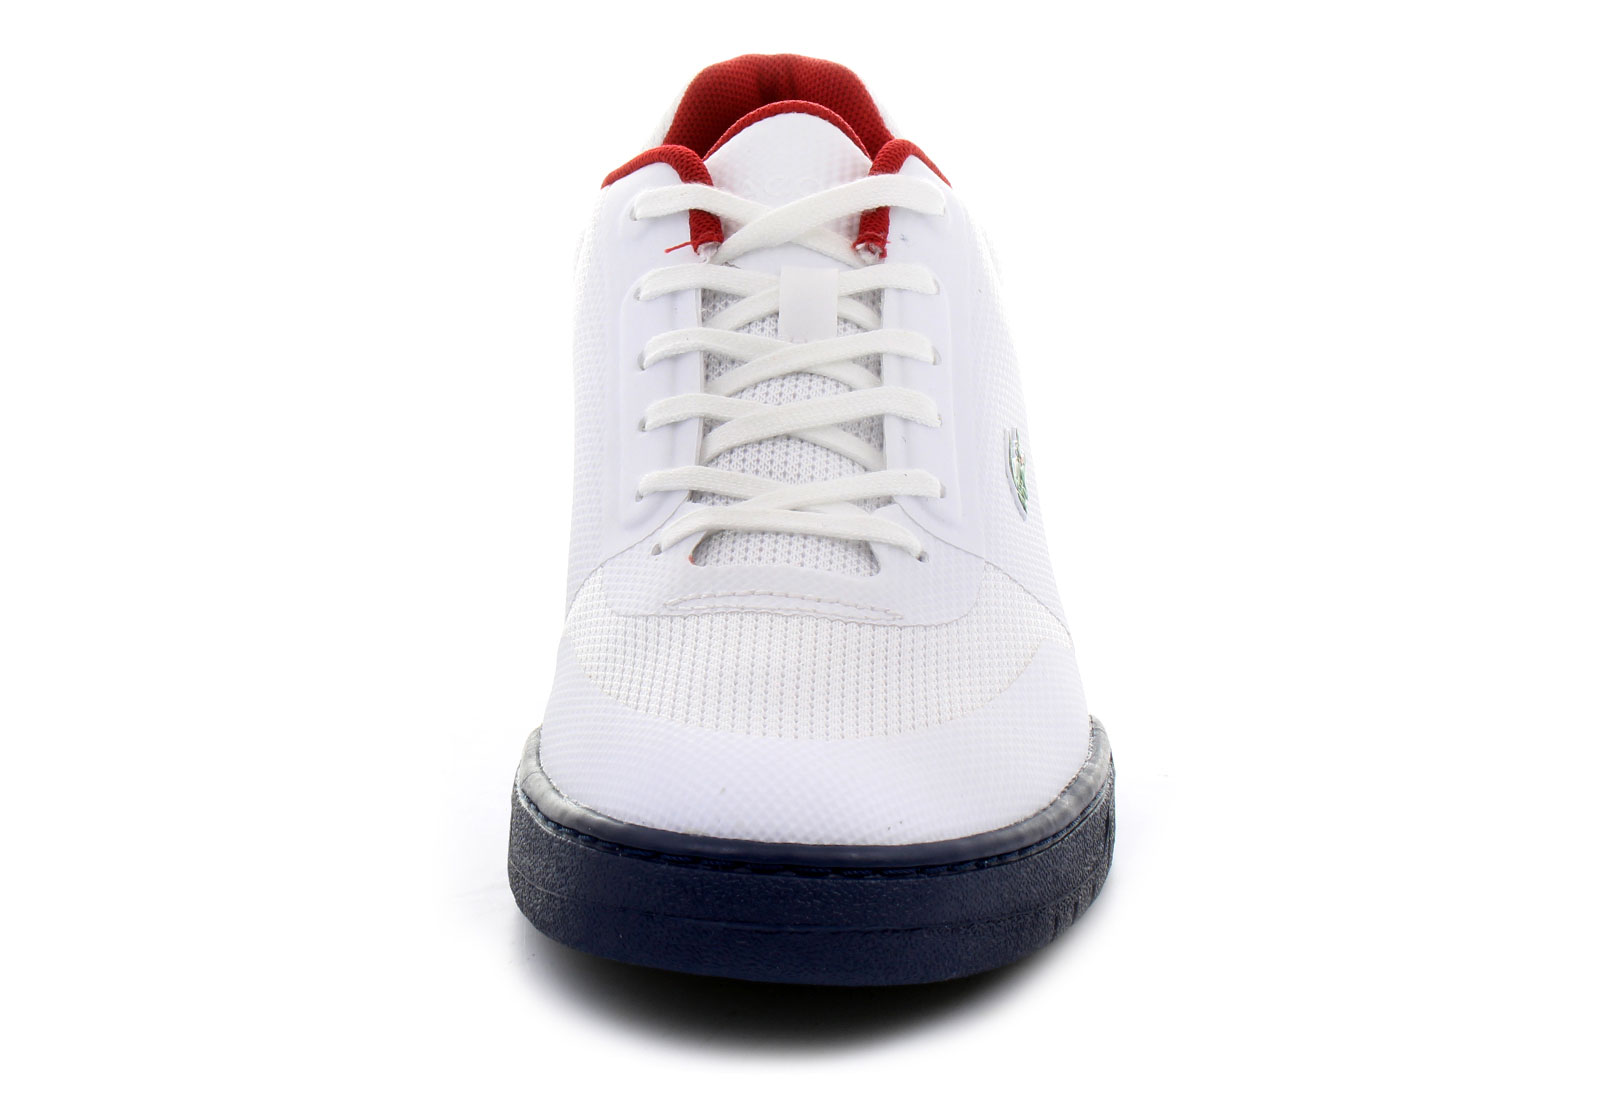 High Top Oly Shoes